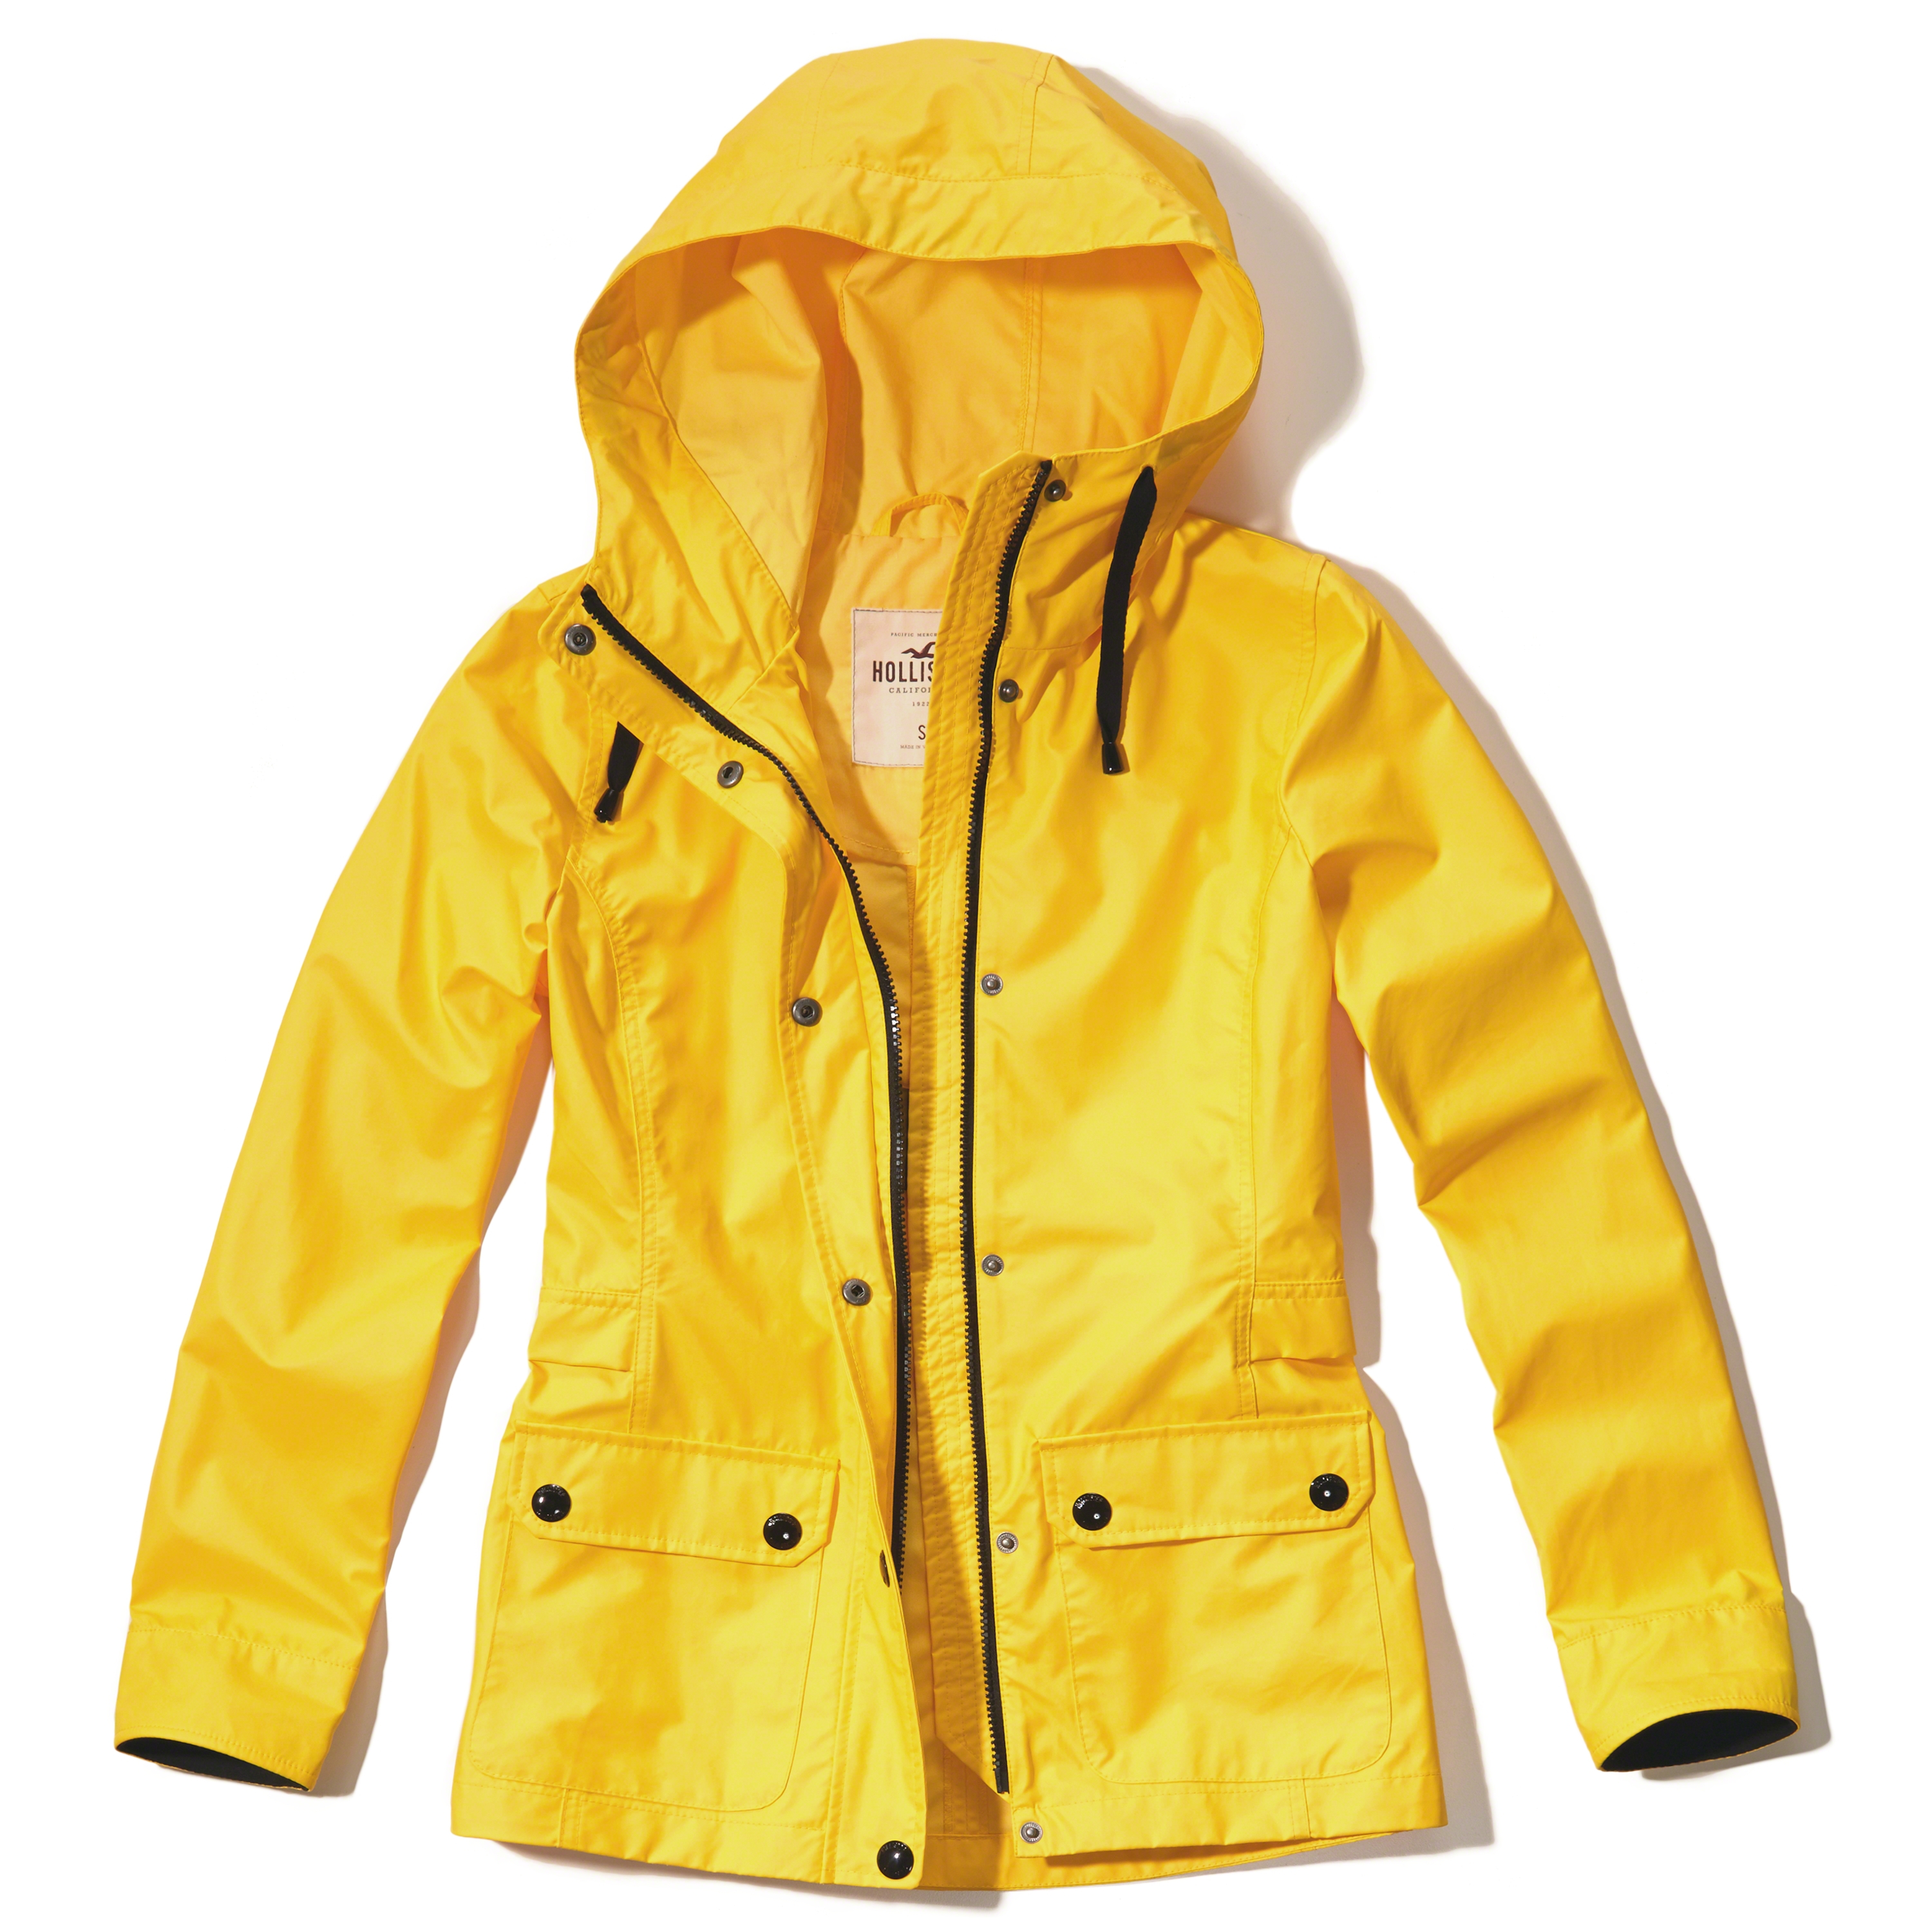 Free shipping BOTH ways on yellow womens rain jacket, from our vast selection of styles. Fast delivery, and 24/7/ real-person service with a smile. Click or call